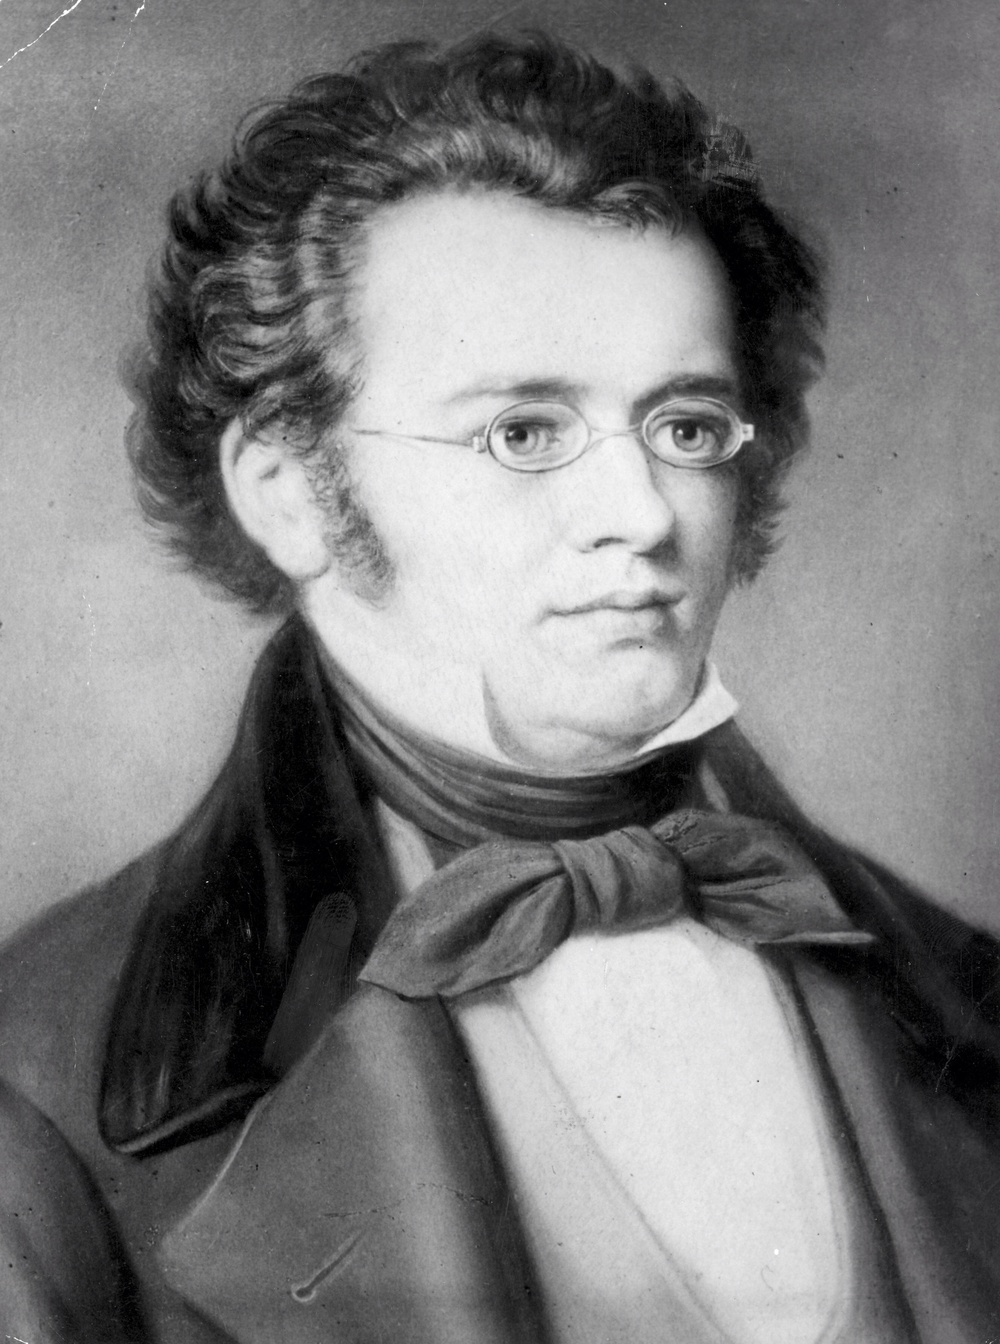 Schubert-he looks like such a nice guy!  Little did he know that he'd be tiring orchestras out for centuries to come.